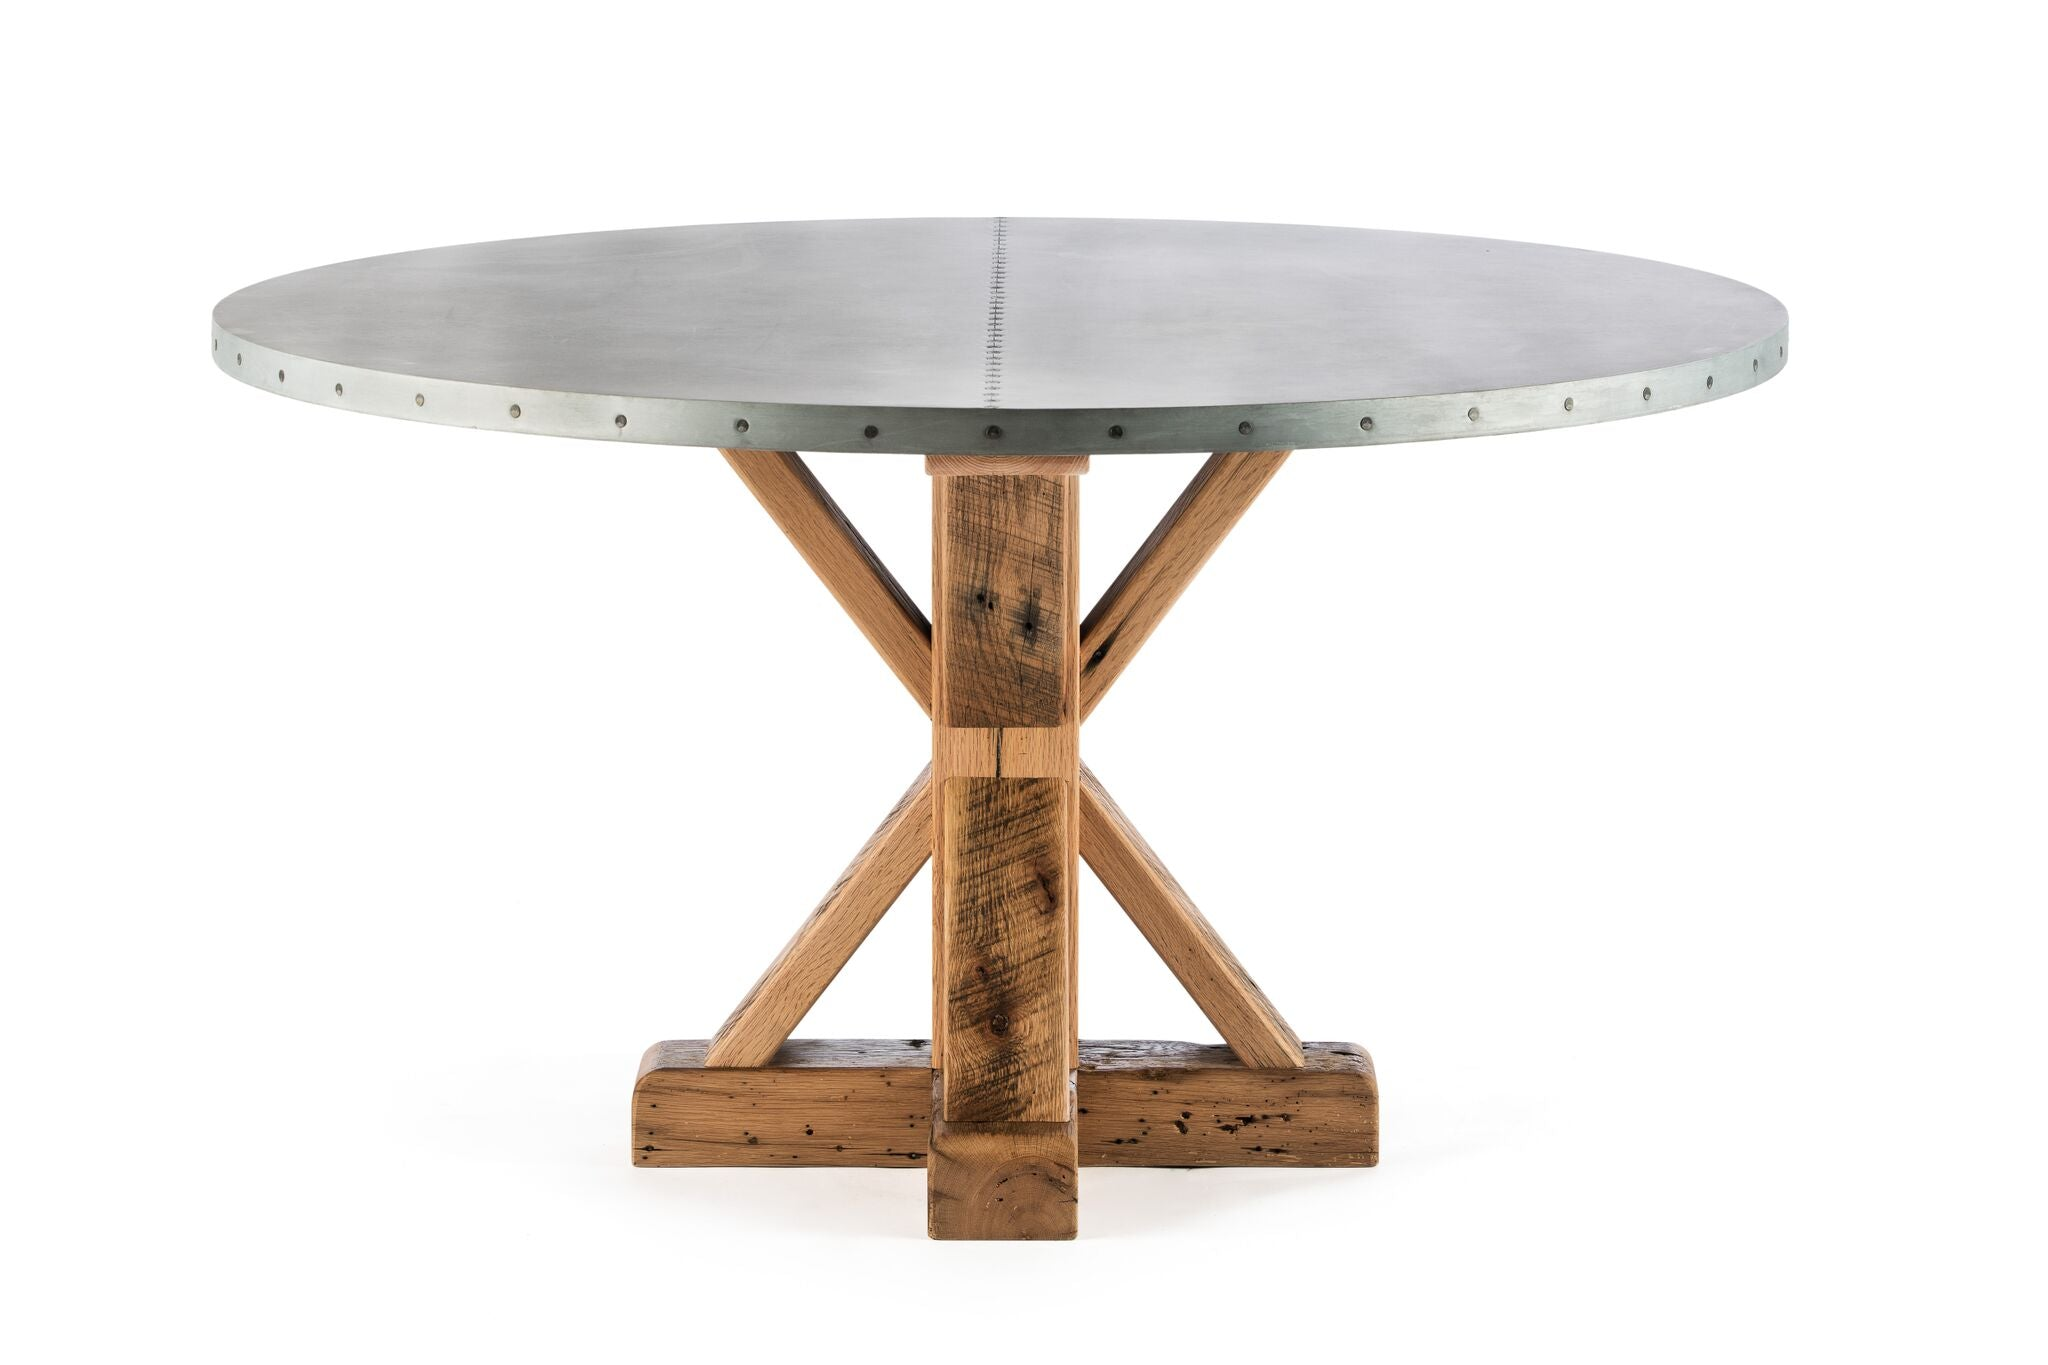 "Zinc Round Tables | French Trestle Table | CLASSIC | Natural Black Walnut | CUSTOM SIZE D 48 H 30 | 1.5"" Standard 